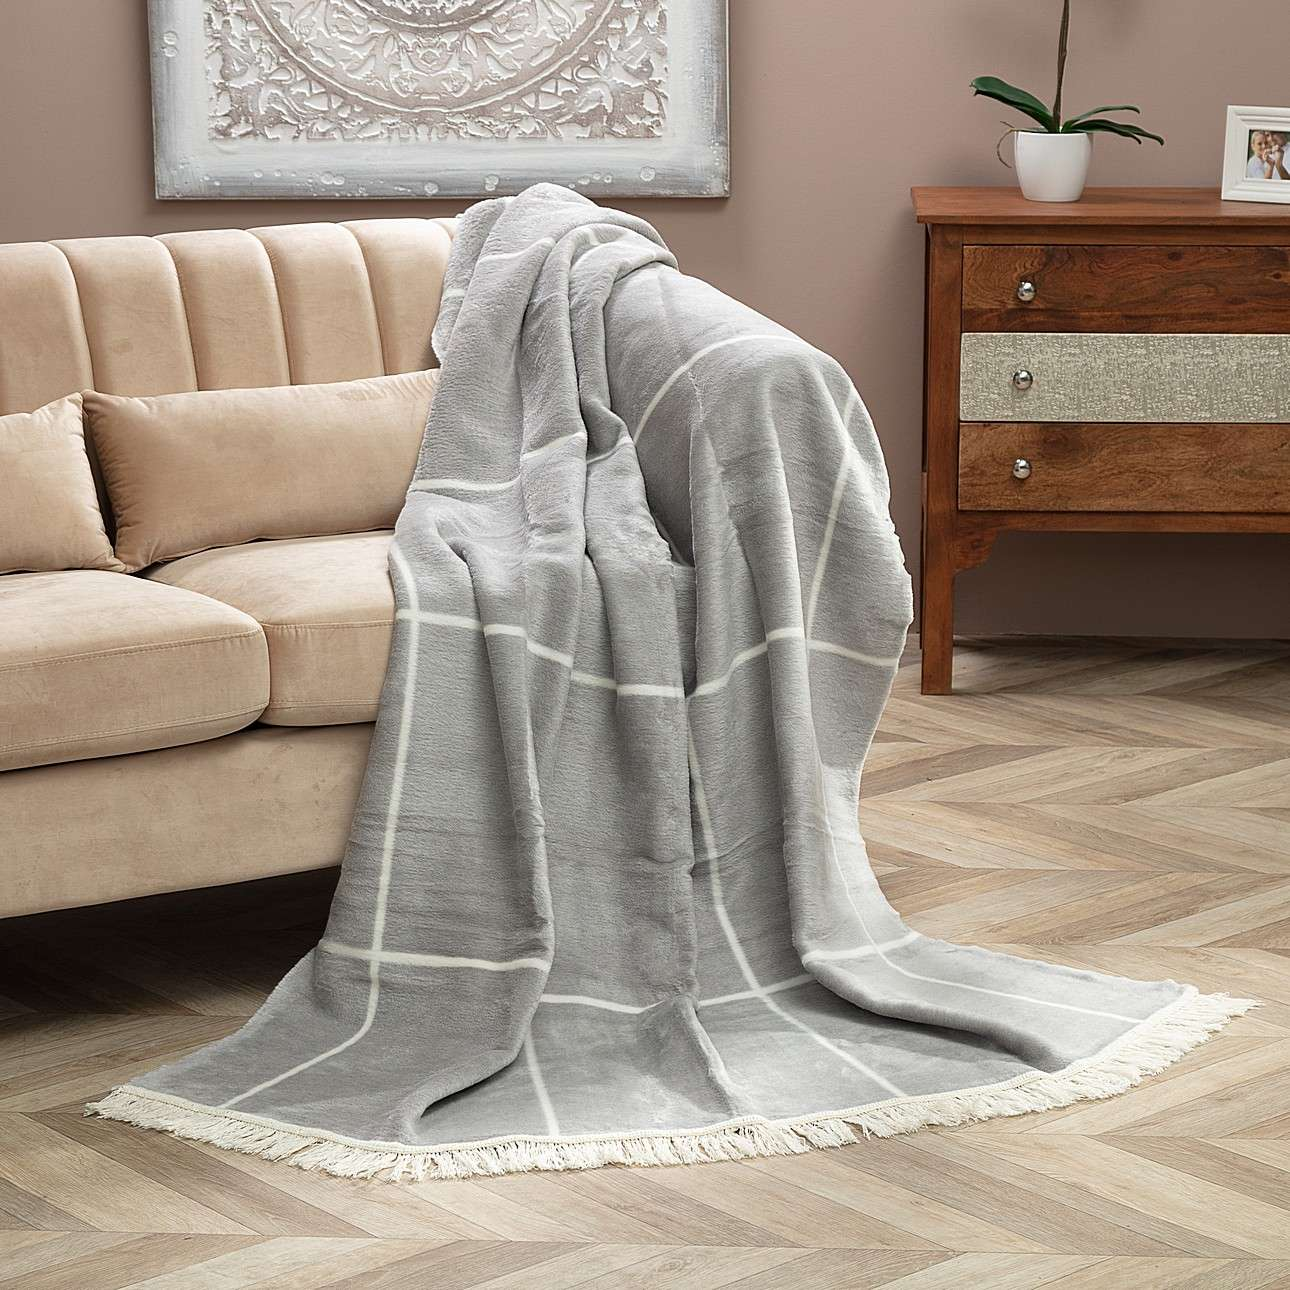 Kuscheldecke Cotton Cloud 150x200 Grey&Ecru Check